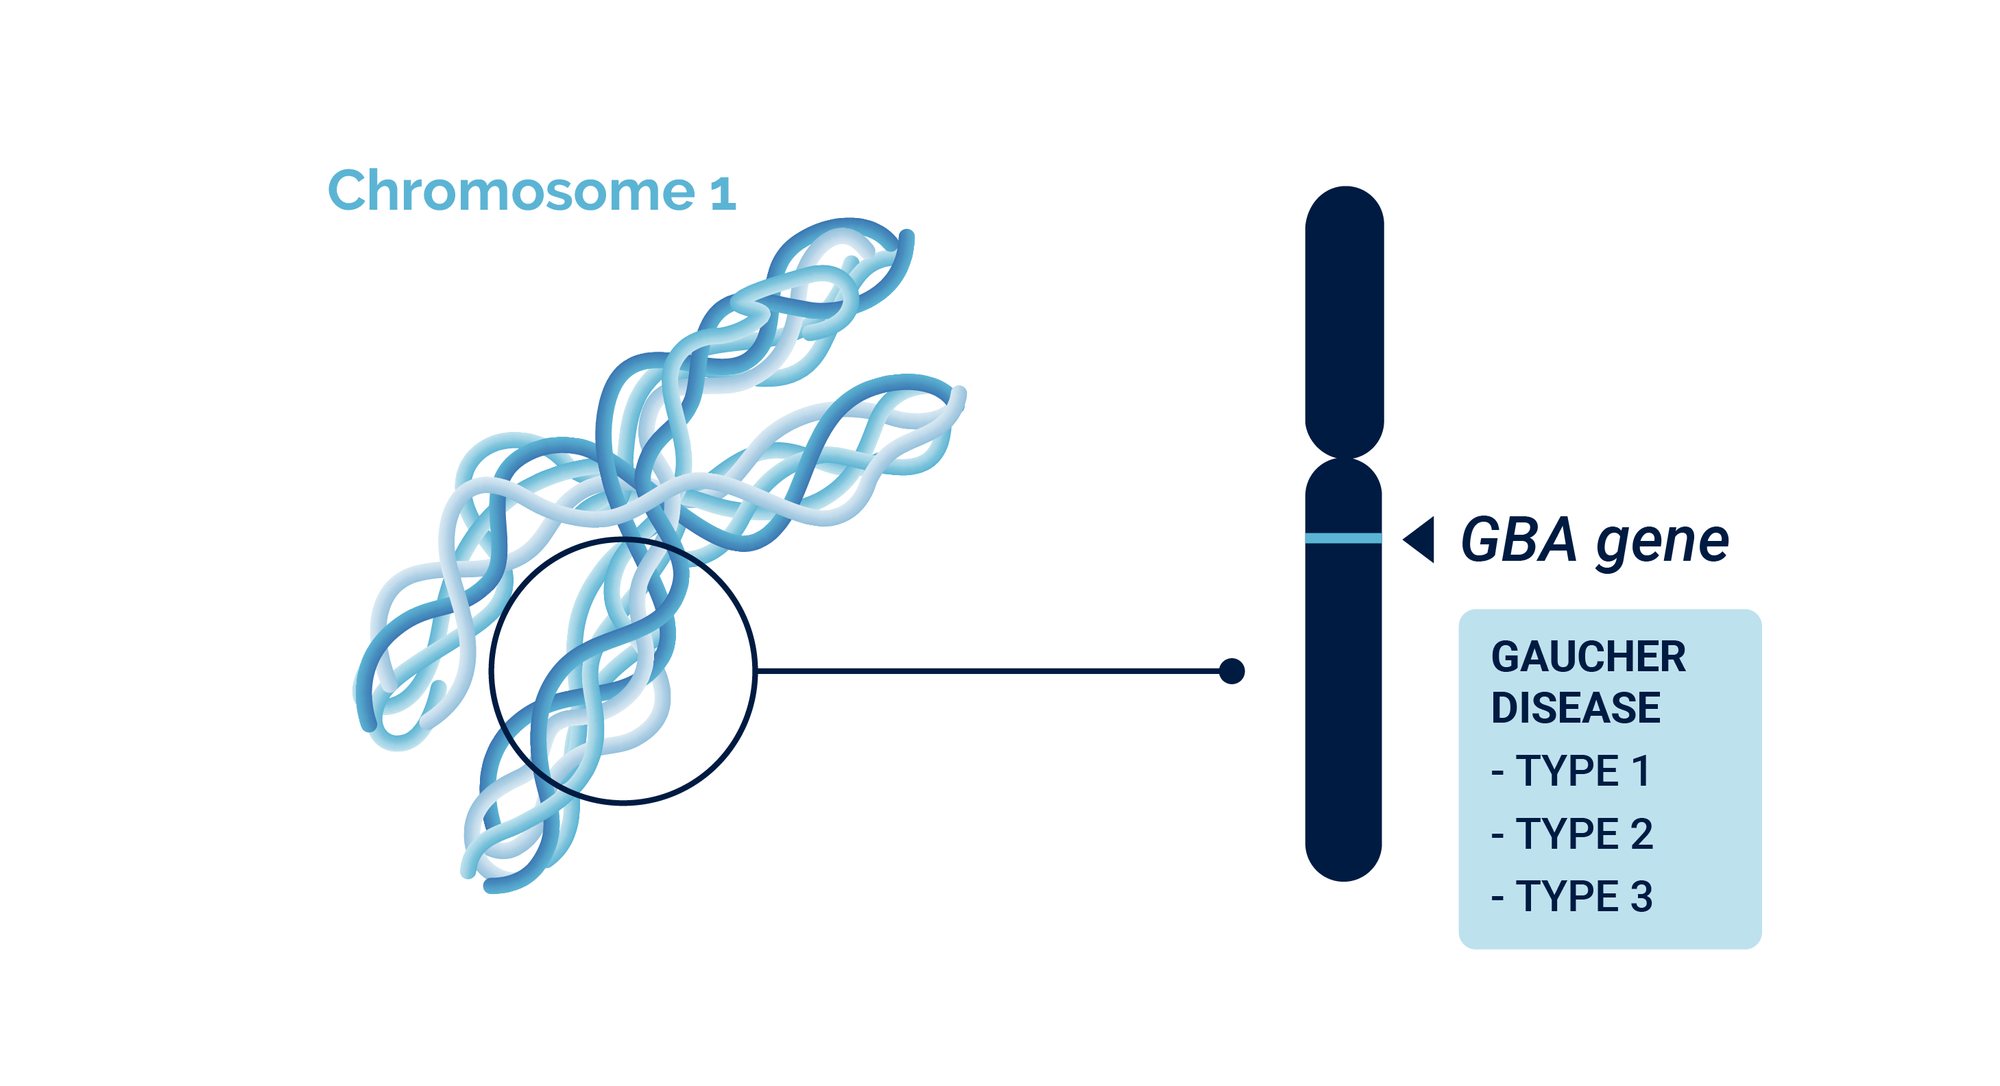 Chromosome 1 and the location of Gaucher disease related GBA gene